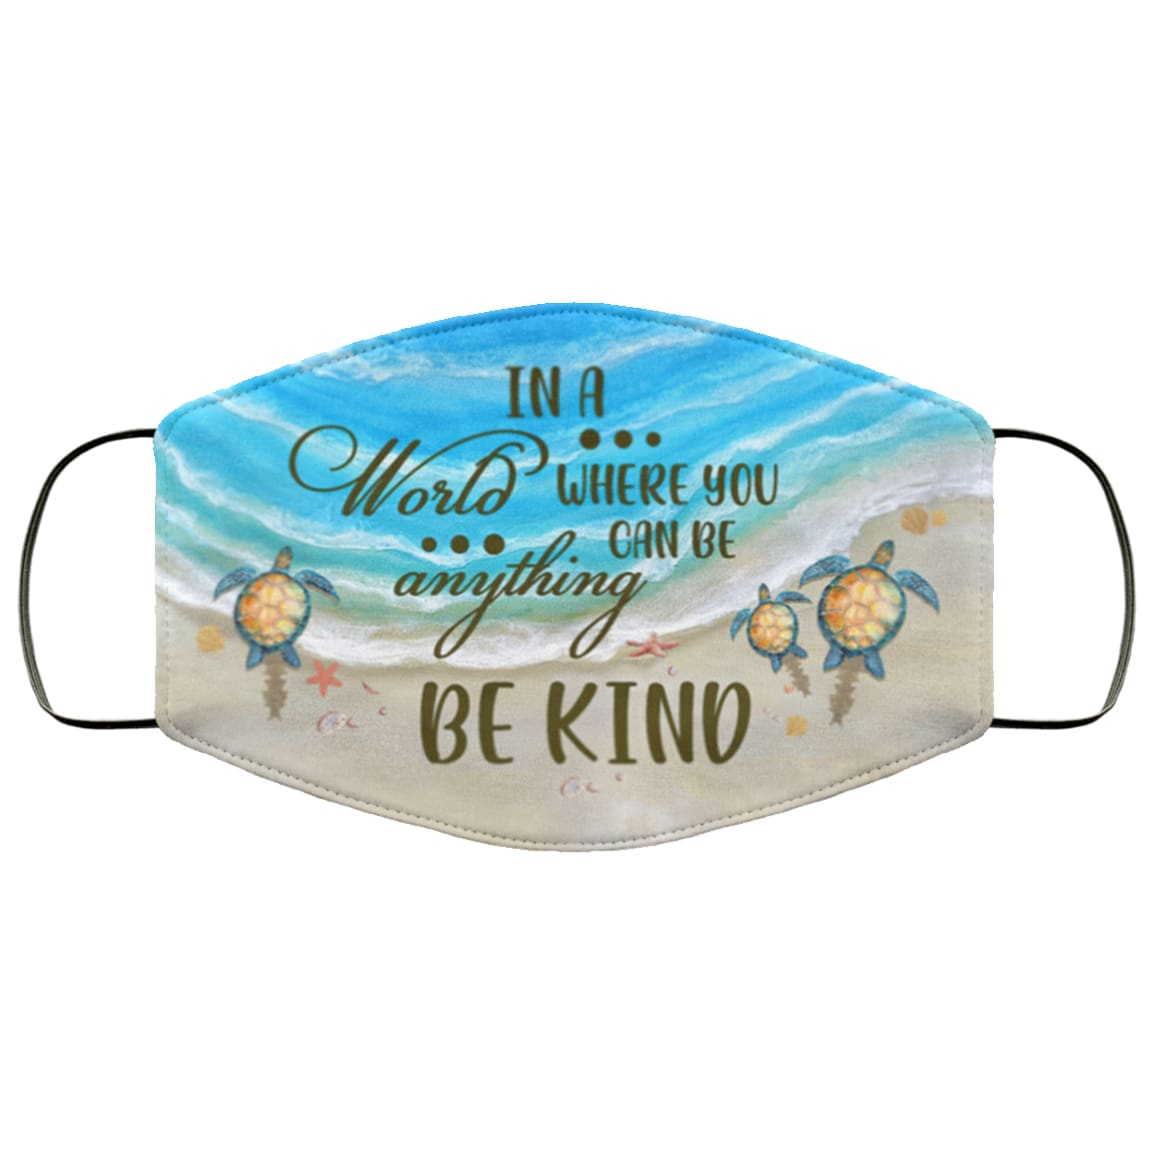 In a world where you can be anything be kind sea turtle face mask 4